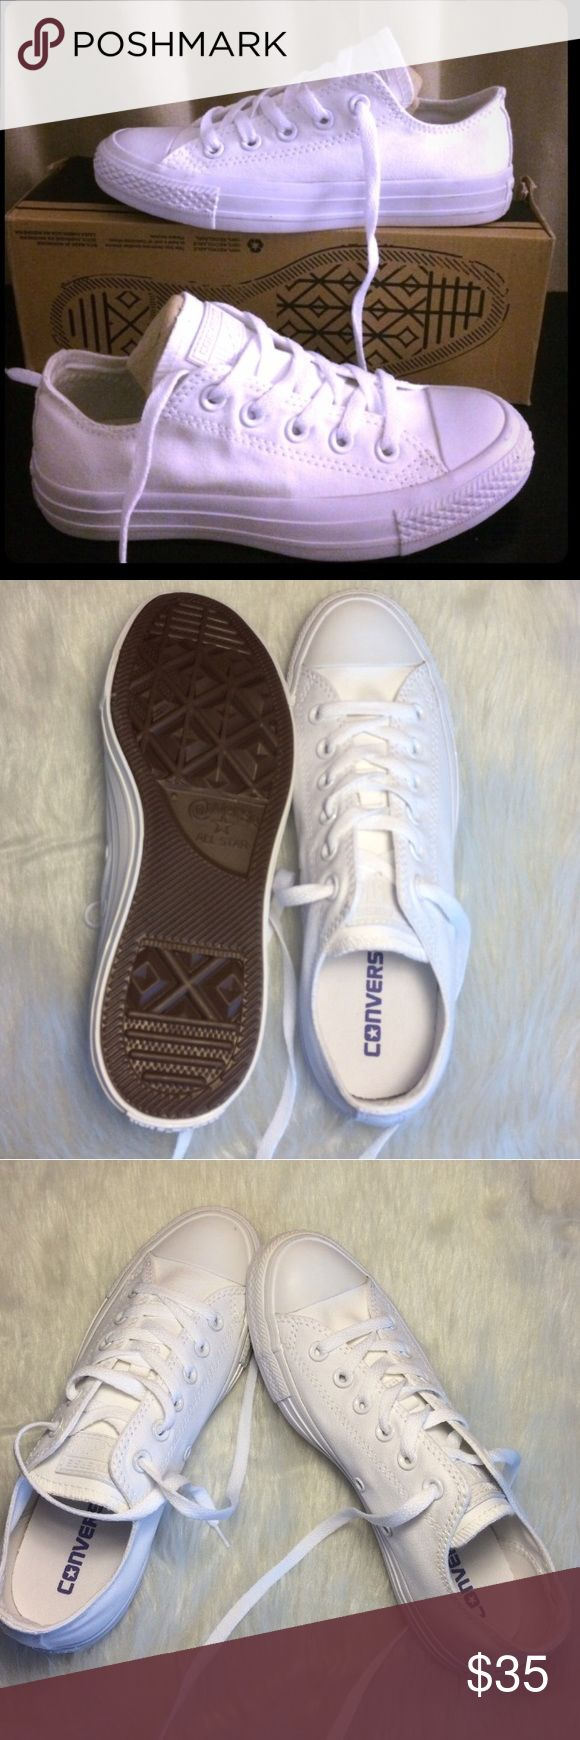 FLASH SALE CONVERSE ALL WHITE WOMENS SIZE 8 LOW ✨ All white low top 100% authentic Womens size 8 shoes, in like new condition. Without box. ✨ PRICE IS FIRM! Converse Shoes Sneakers